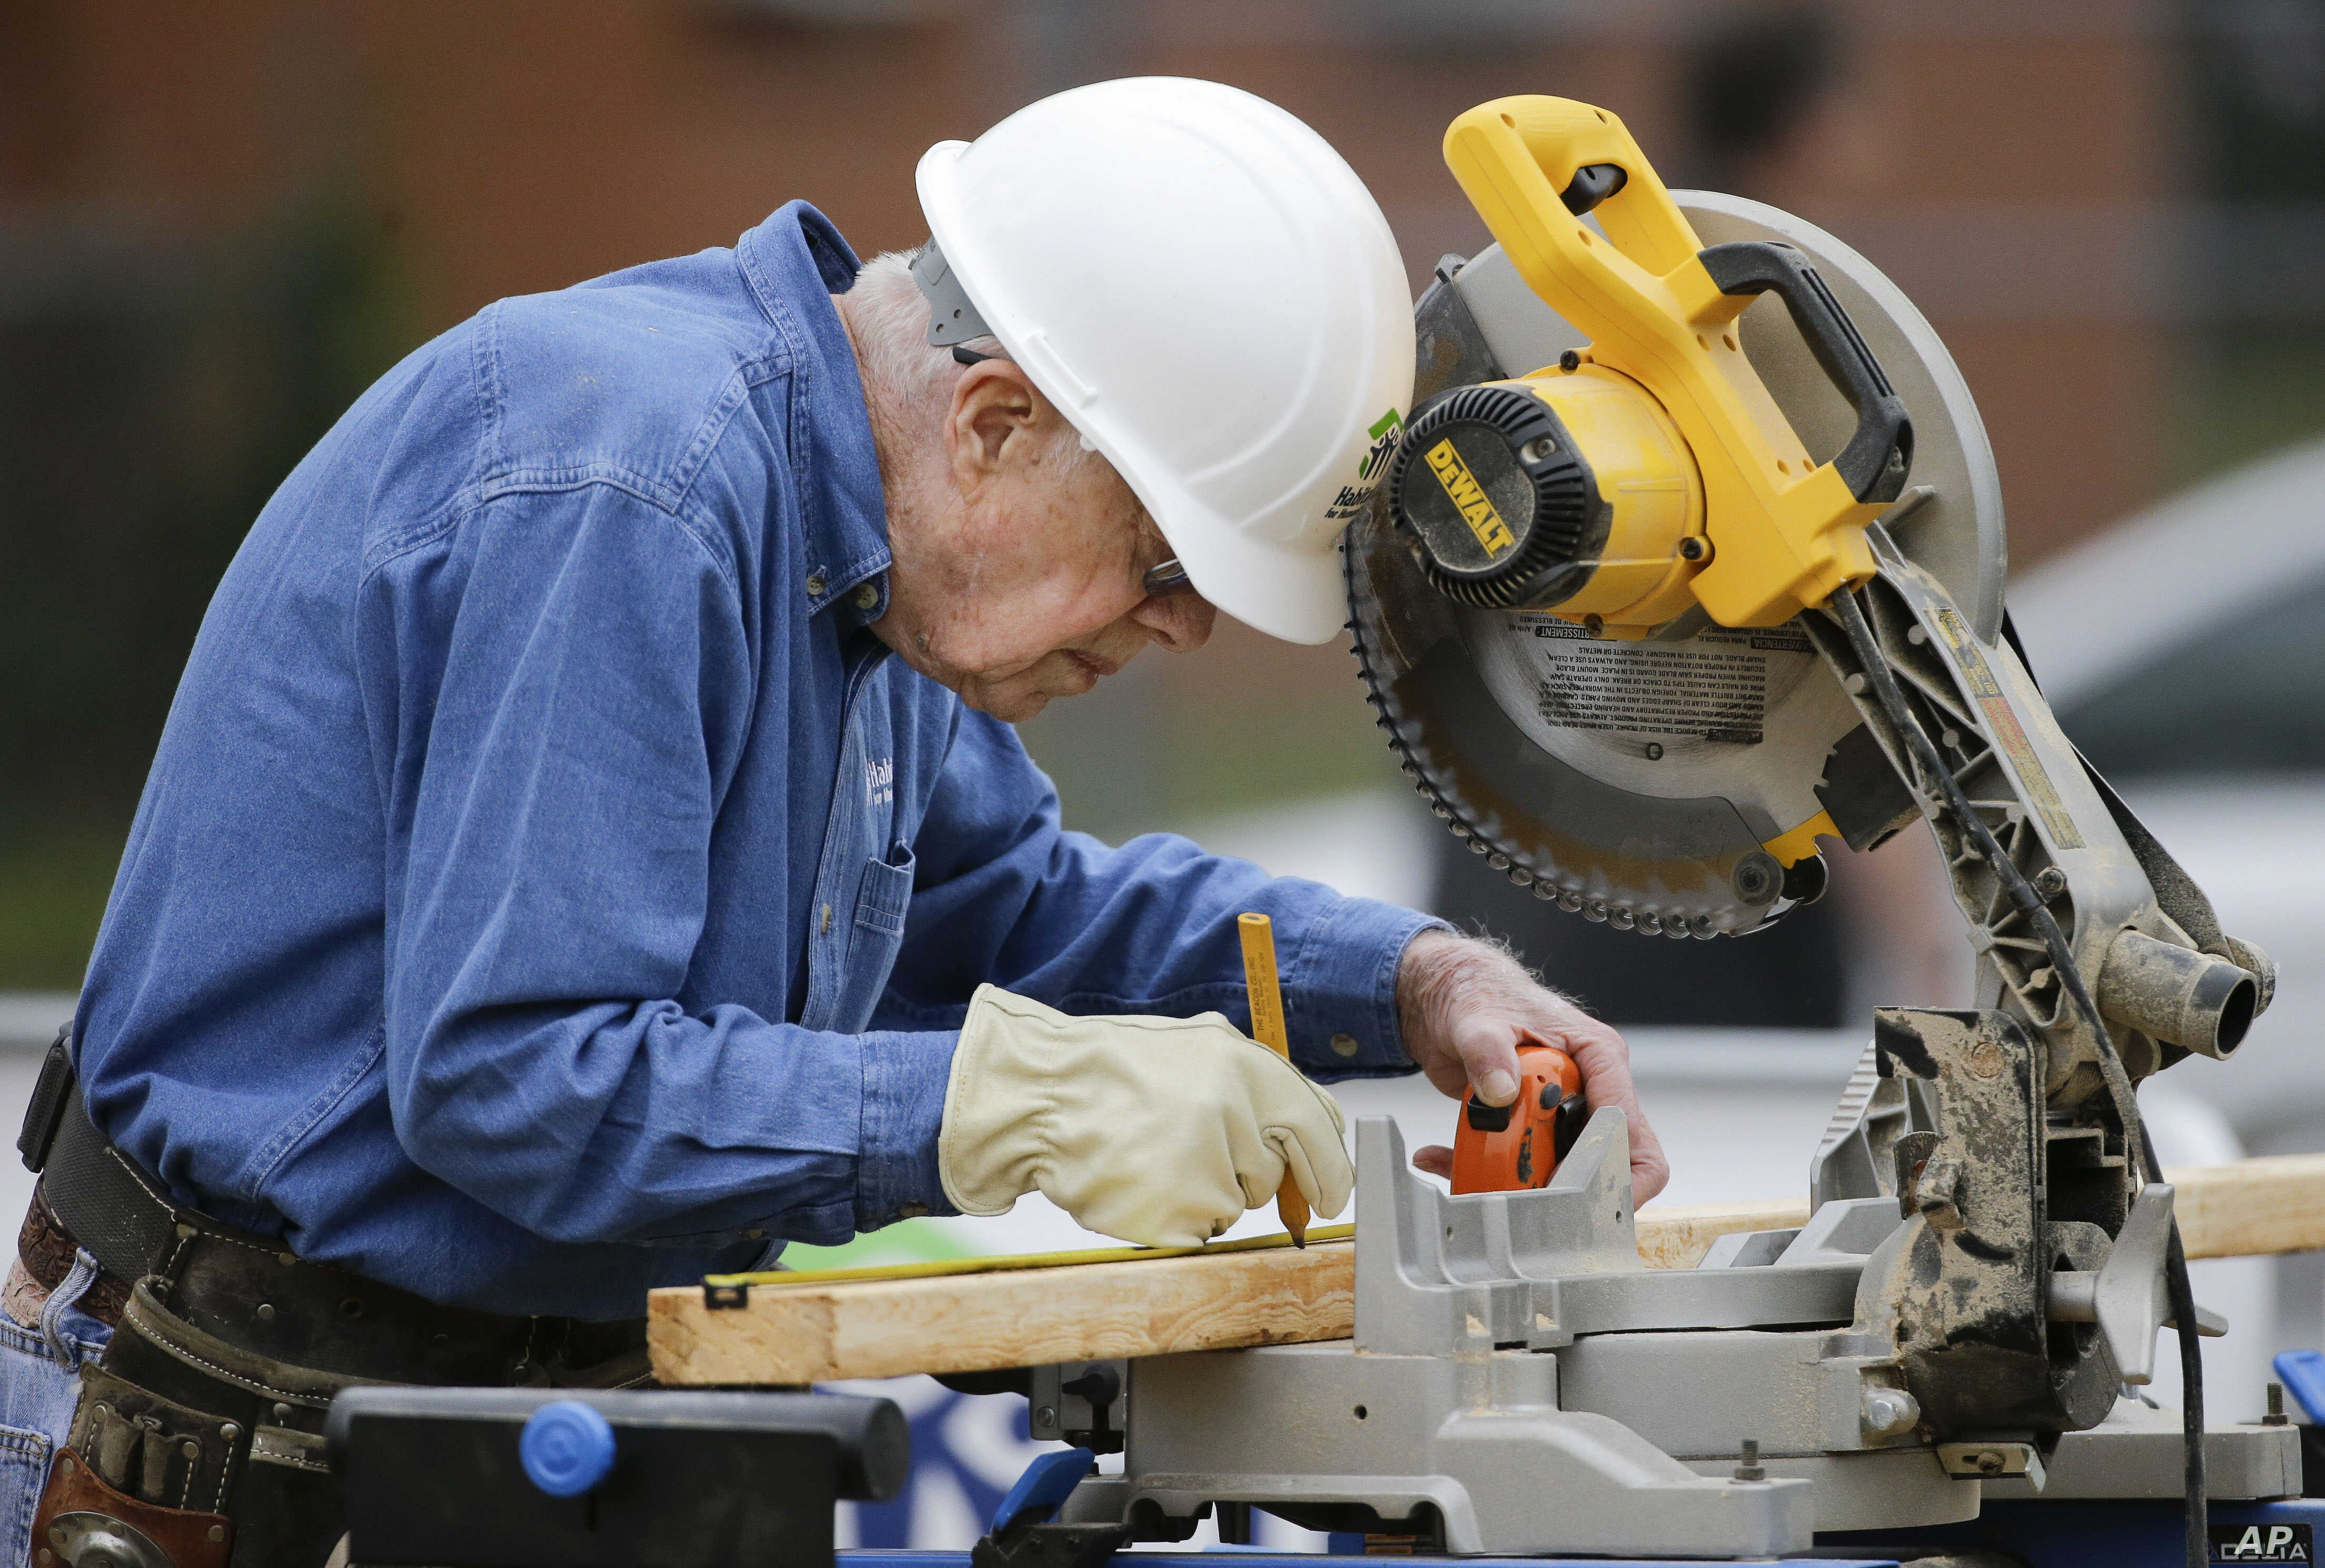 Former president Jimmy Carter measures before making a cut with a miter saw at a Habitat for Humanity building site, Nov. 2, 2015, in Memphis, Tennessee.